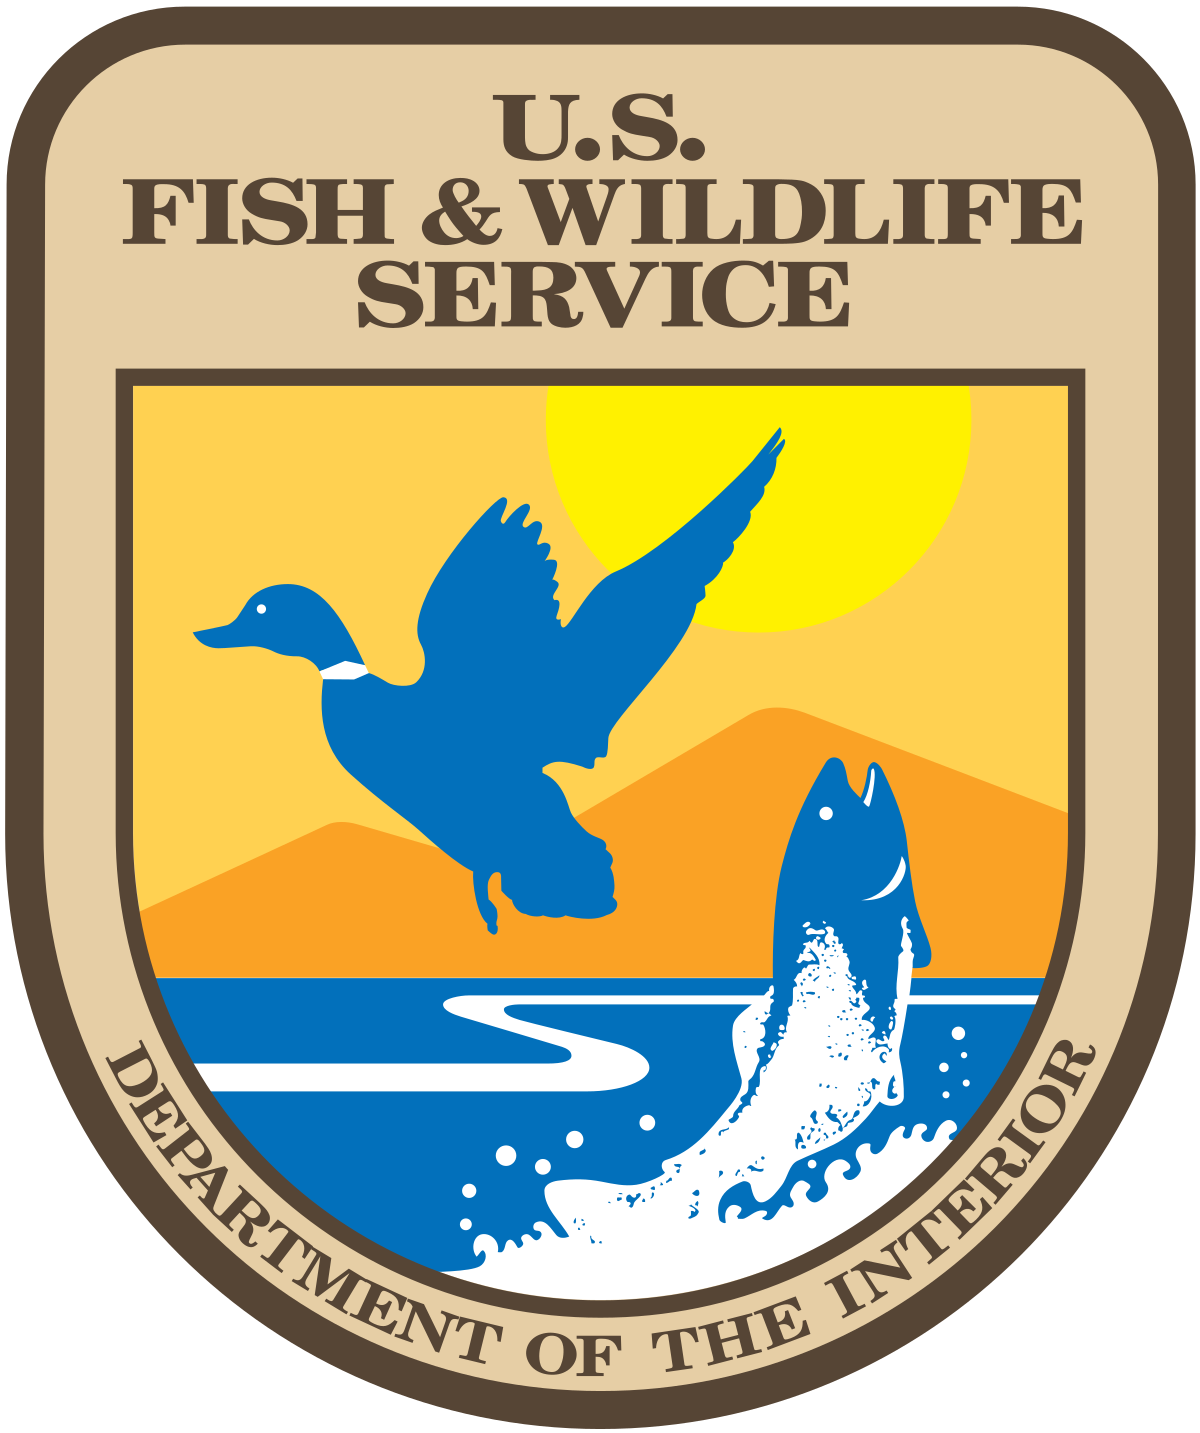 4/12/19 ~ Department of the Interior, U.S. Fish and Wildlife